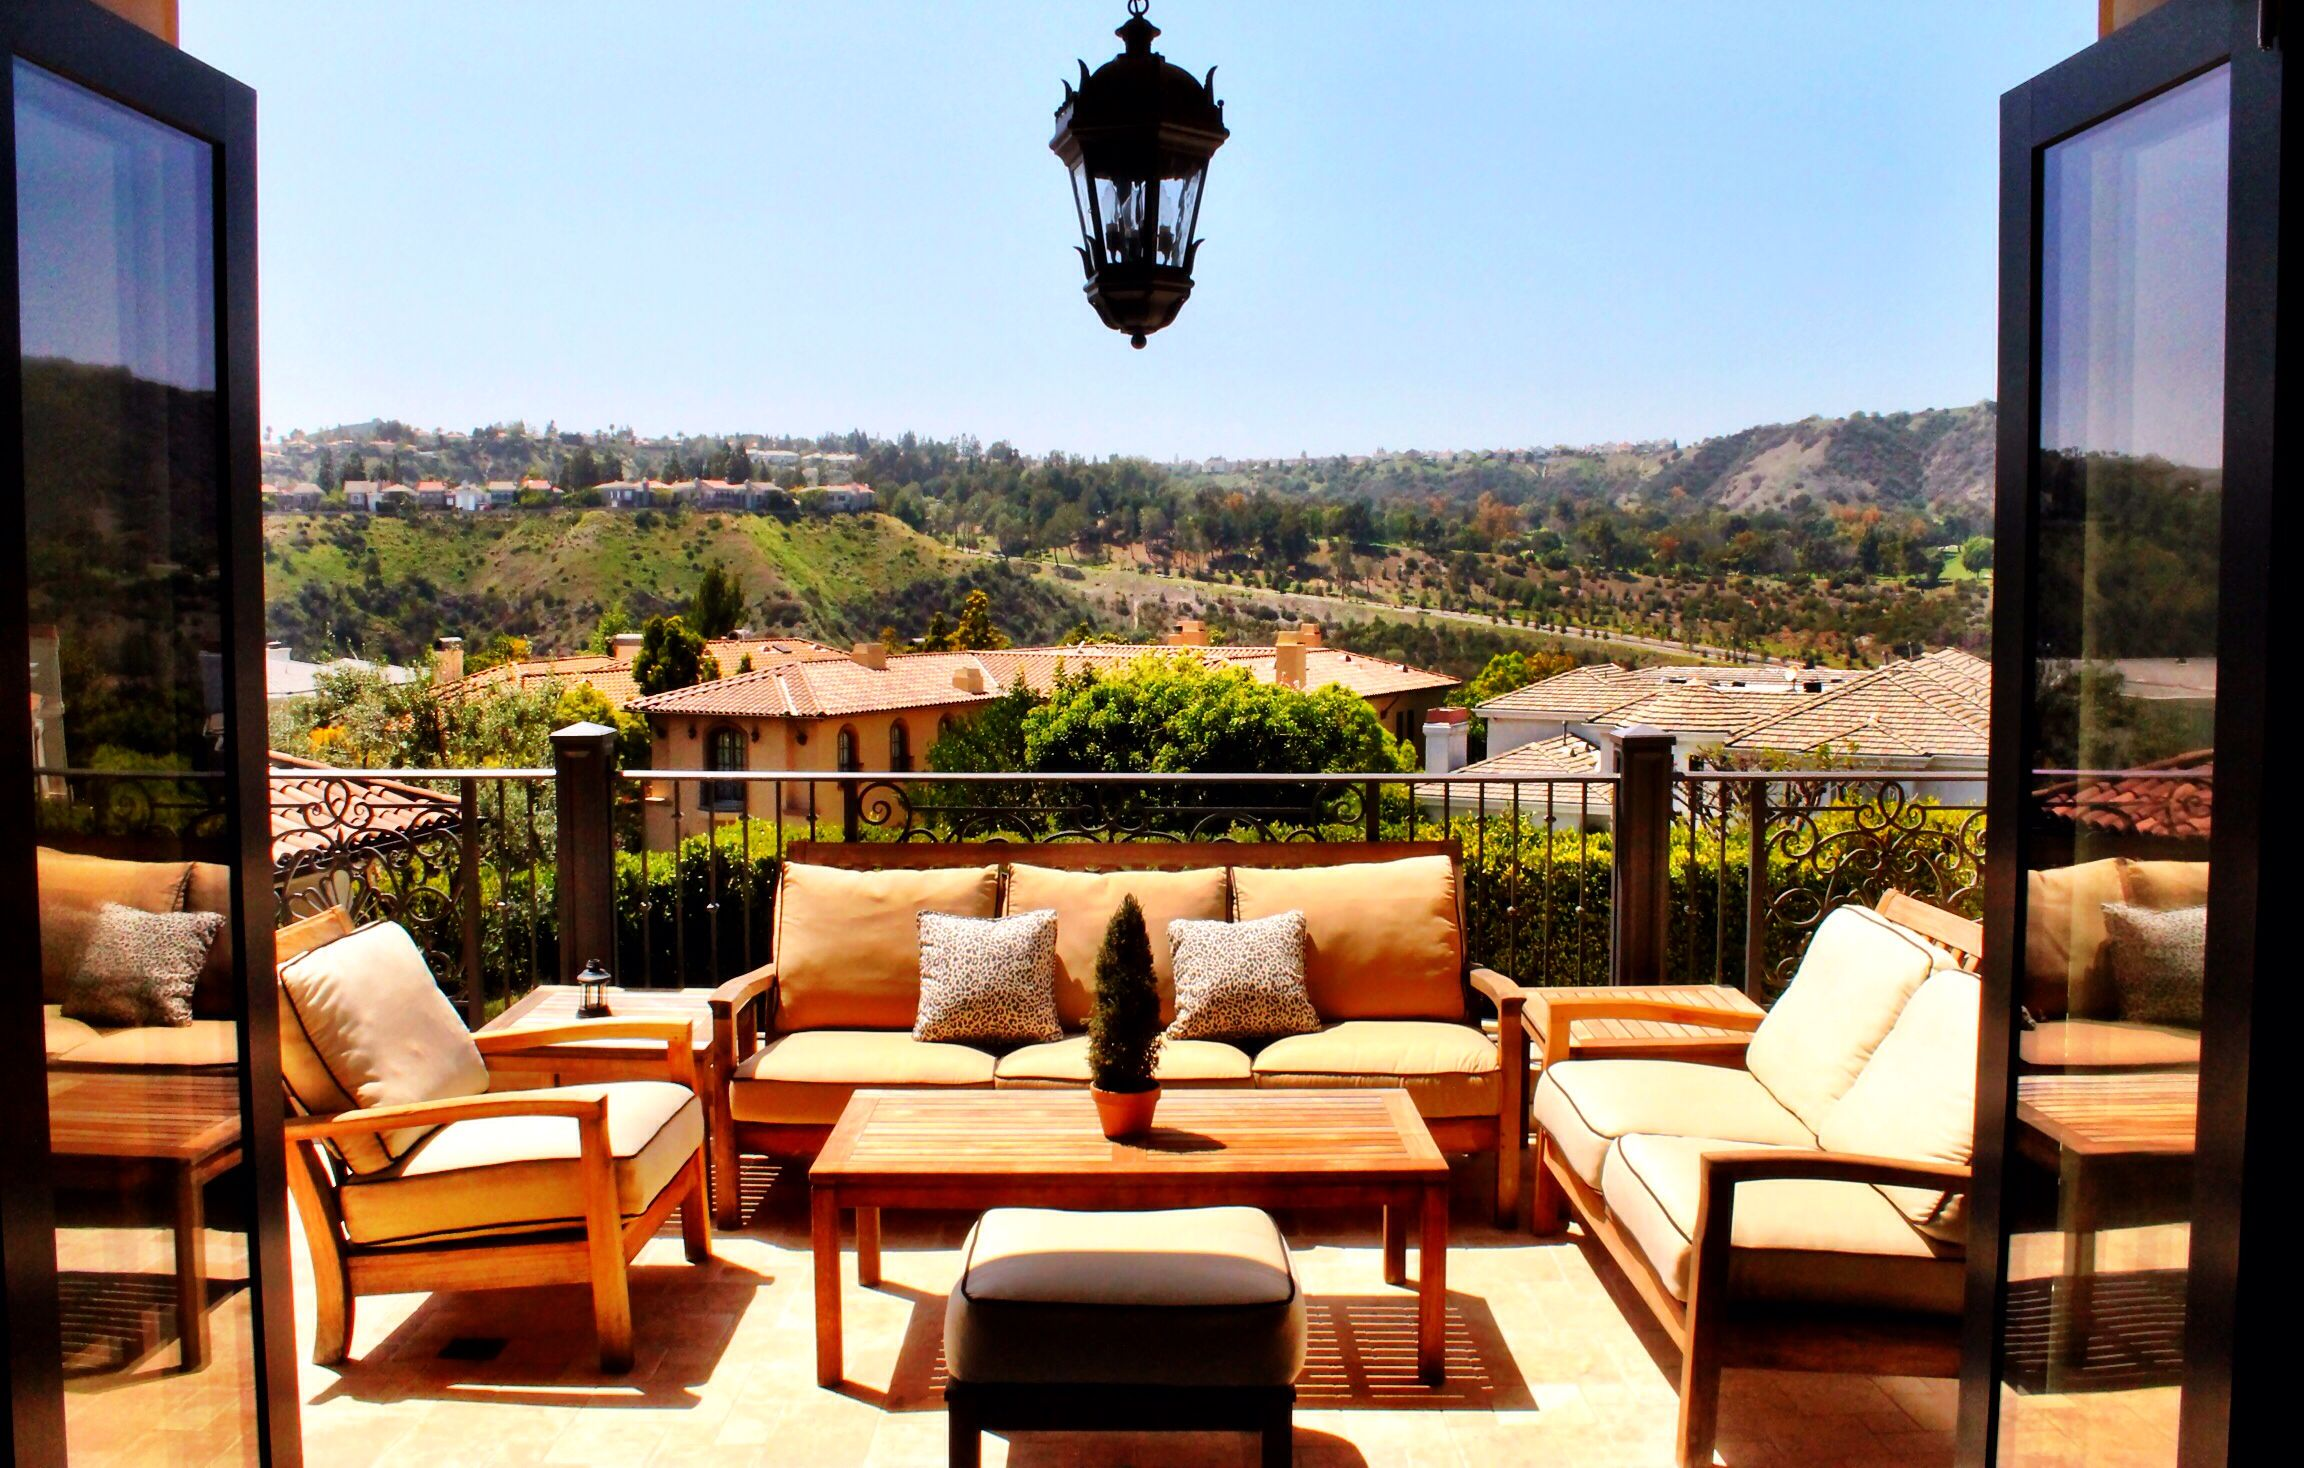 Enjoying the view in Bel Air Crest. Los angeles homes